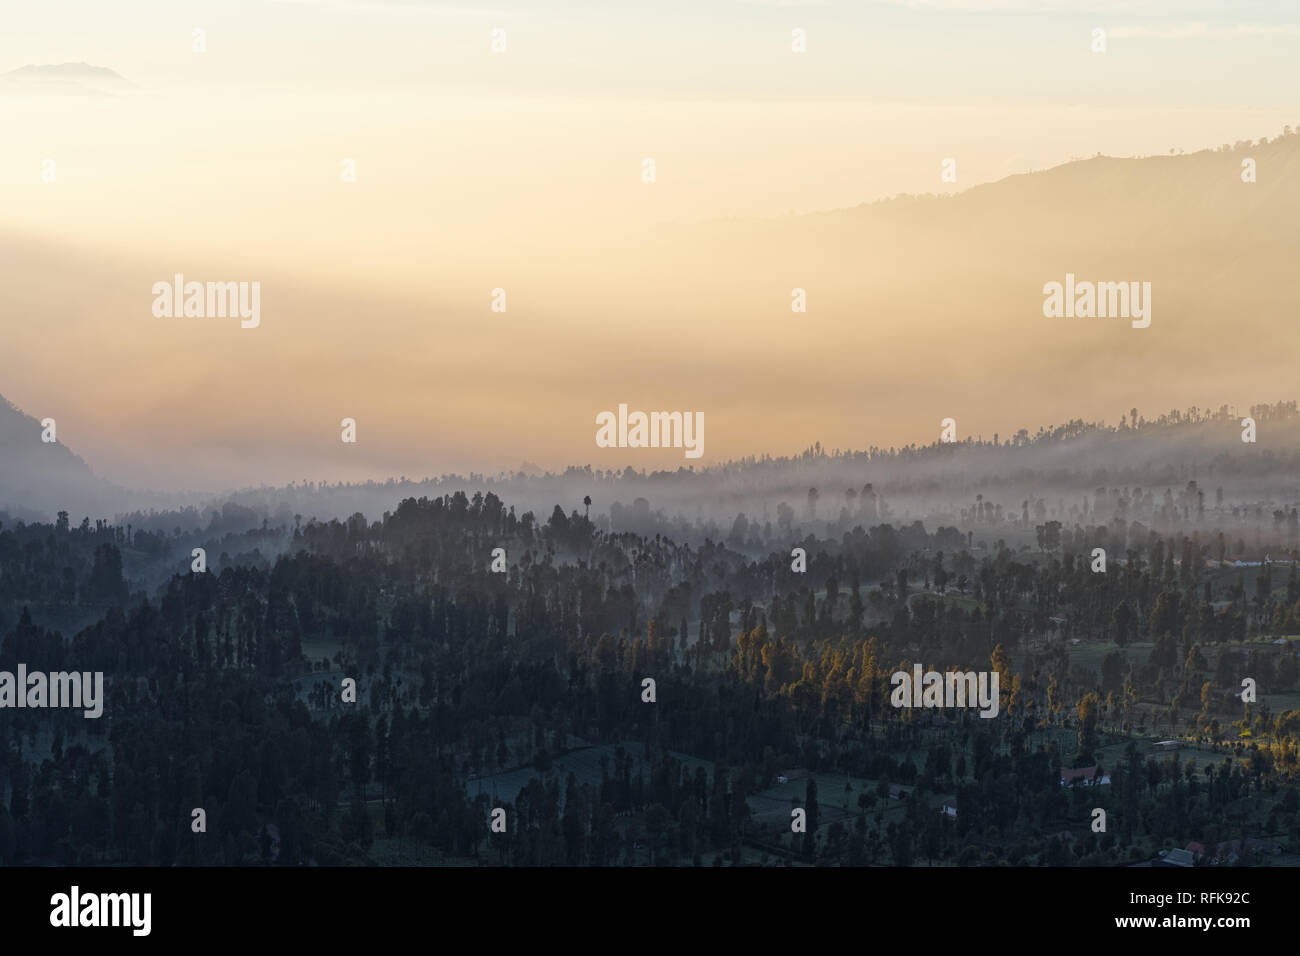 Mist mood on the plateau at the volcano Mt. Bromo at sunrise, clouds of mist between trees, first rays of sunshine are making their way - Location: In - Stock Image